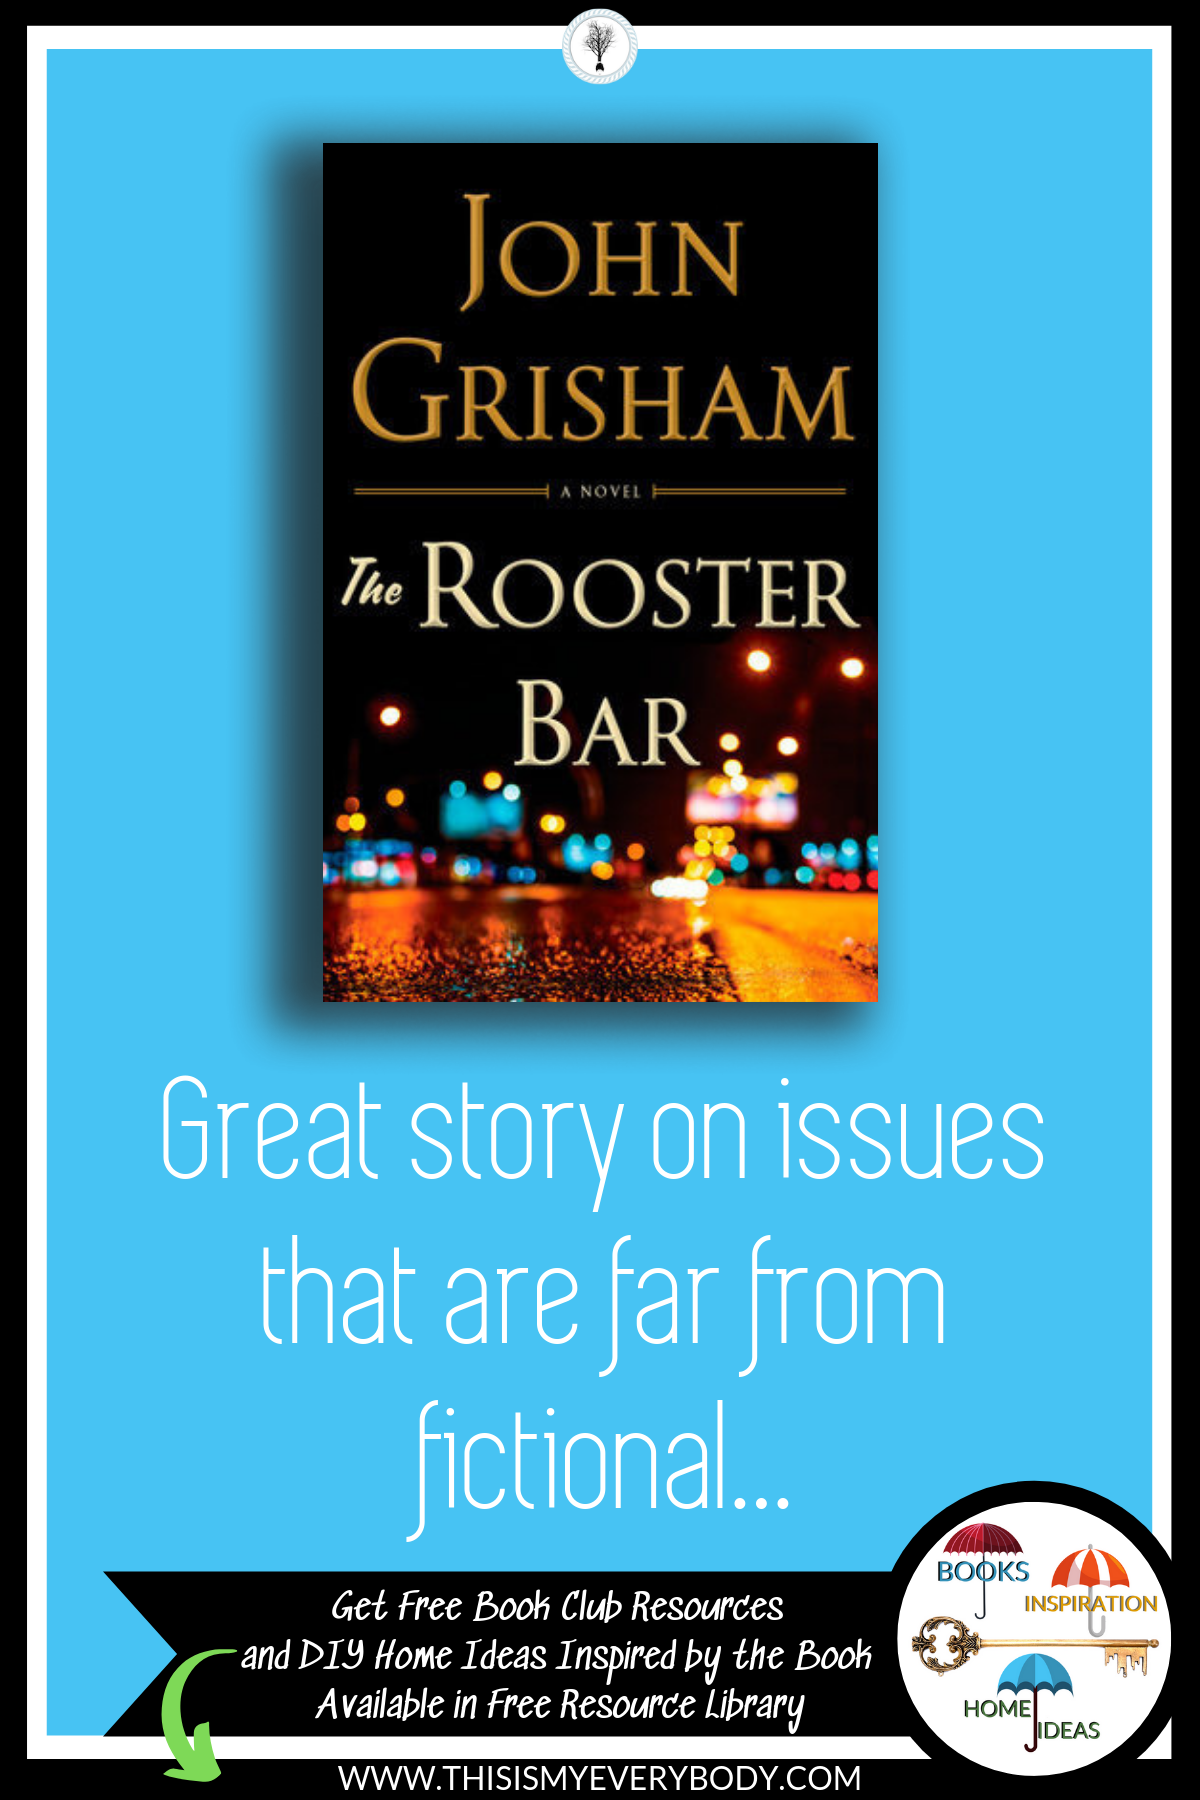 With issues that are far from fictional, The Rooster Bar by John Grisham hits the mark on a page-turning story that is built upon overwhelming circumstances that are a part of many people's daily realities... Get my free Book Club Resources and DIY Home Ideas Inspired by the Book - Available in Free Resource Library | This Is My Everybody - Books, Inspiration and Home Ideas